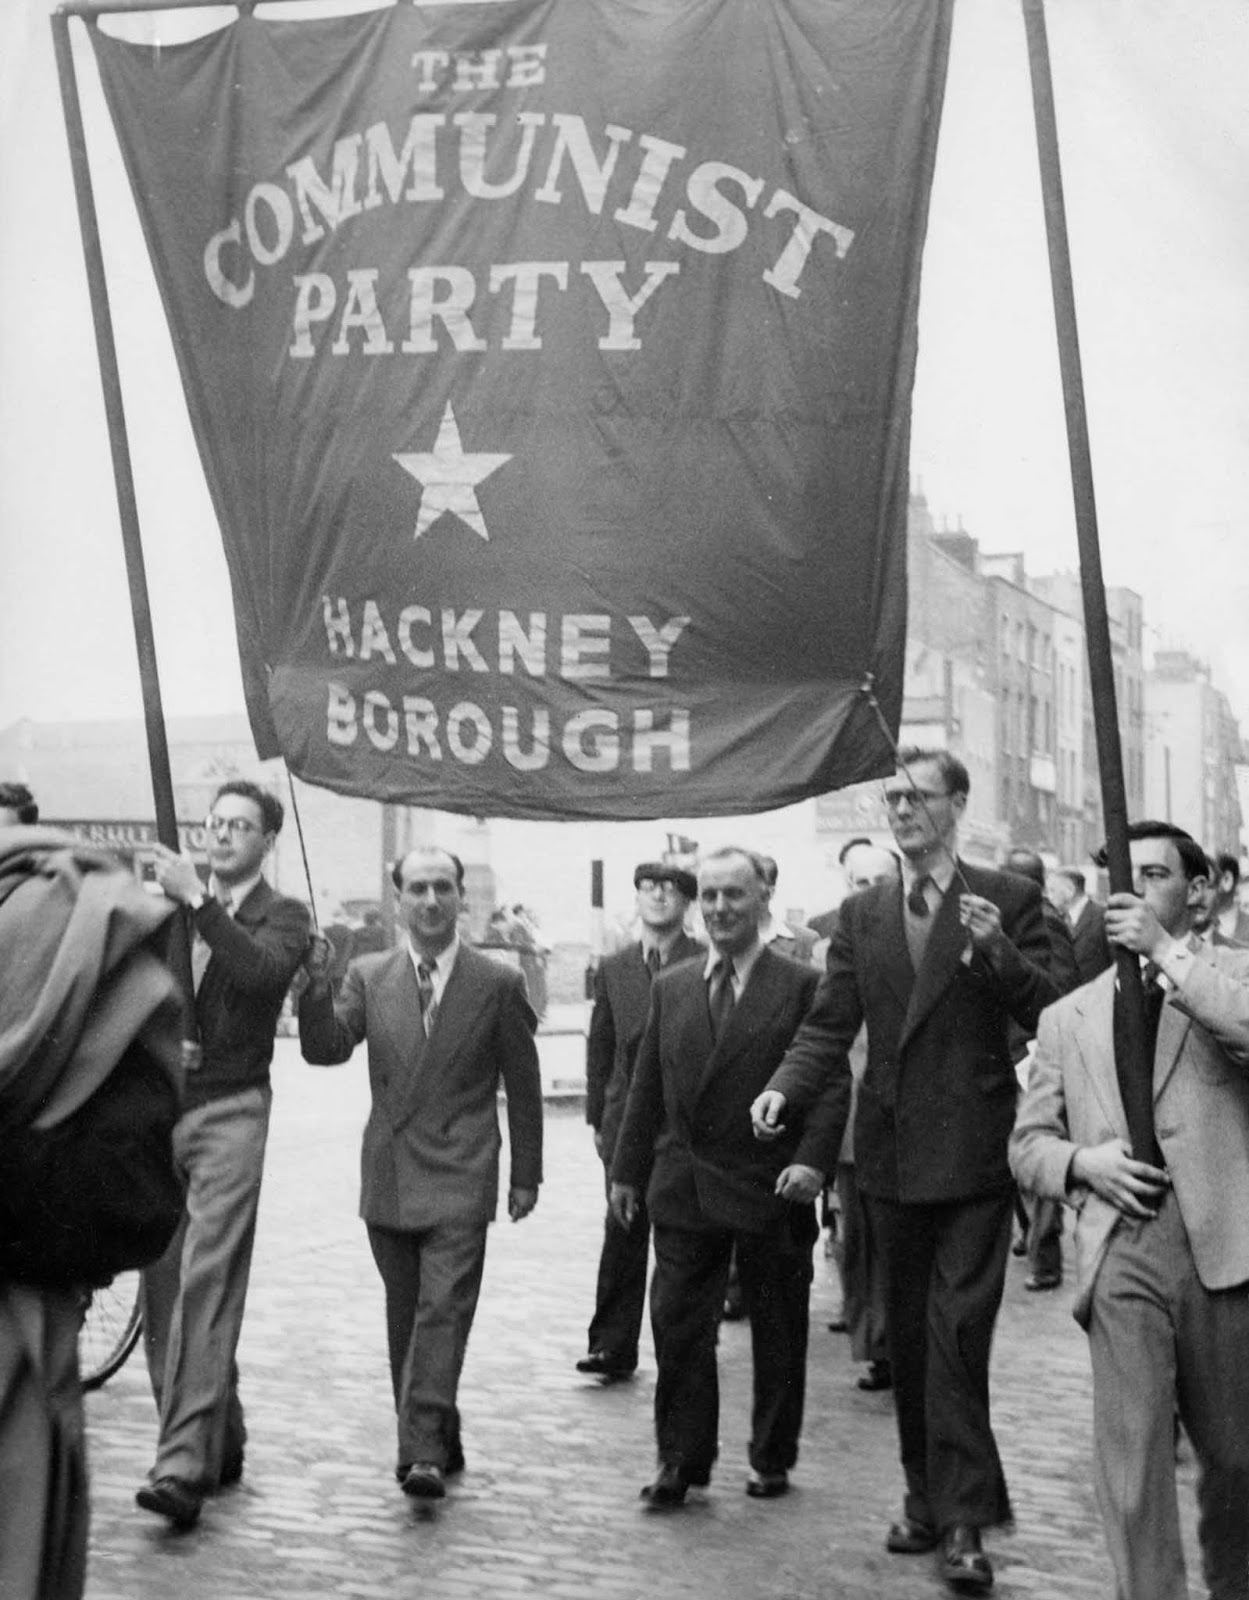 Members of the Hackney branch of the Communist Party of Great Britain take part in a march. 1952.